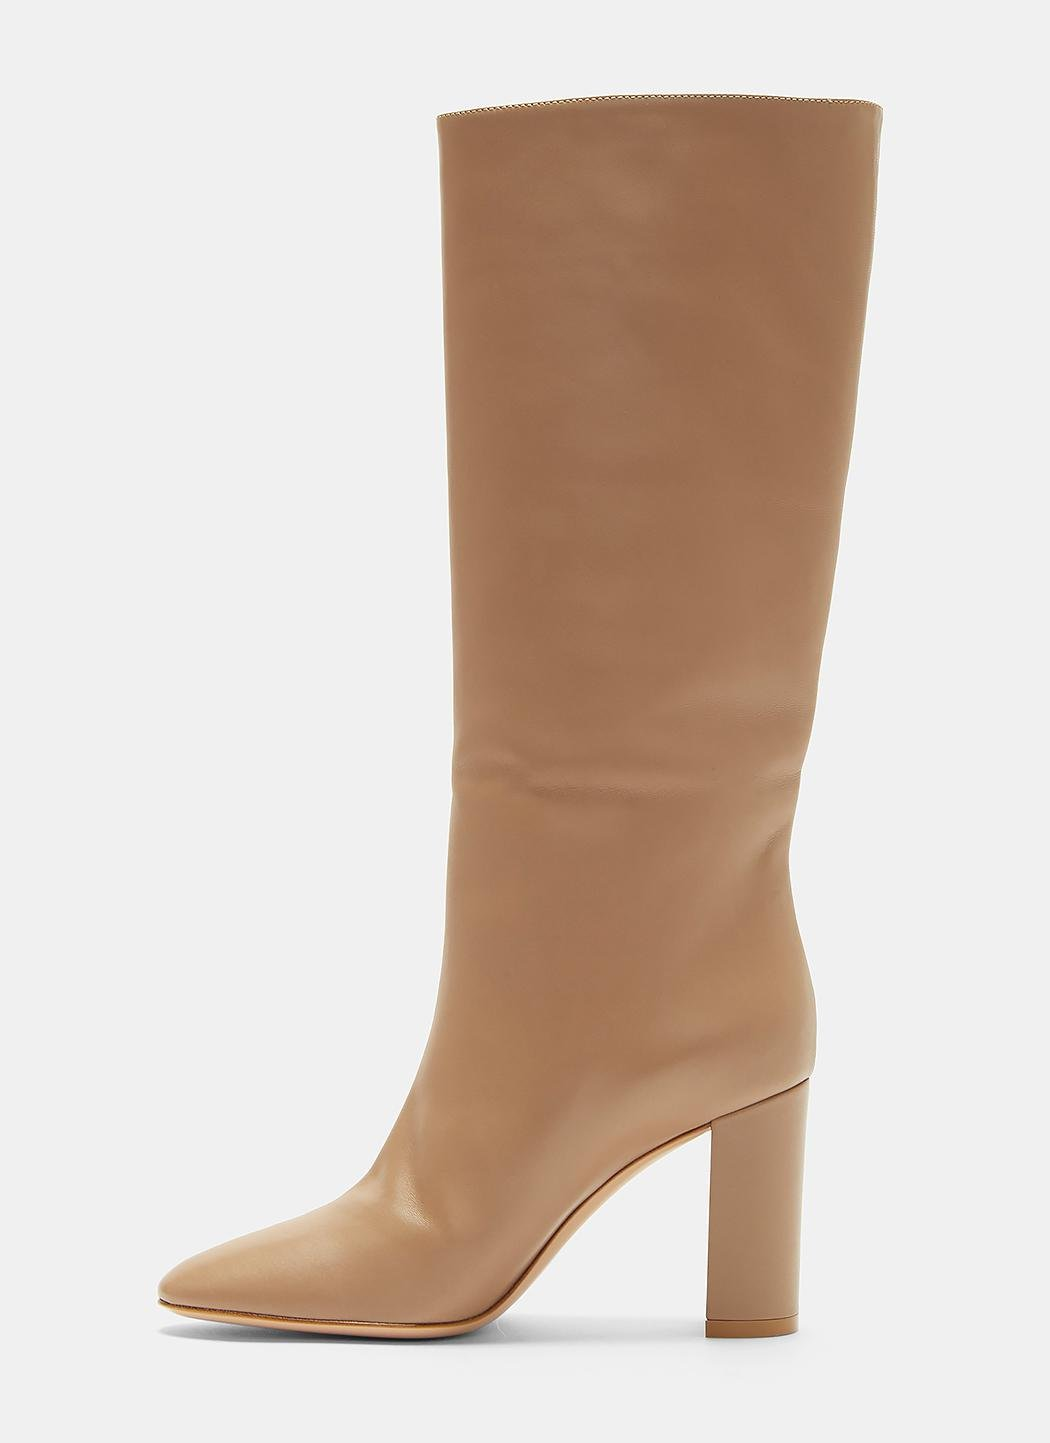 Gianvito Rossi Leather Laura 85 Calf Length Boots In Beige in Natural